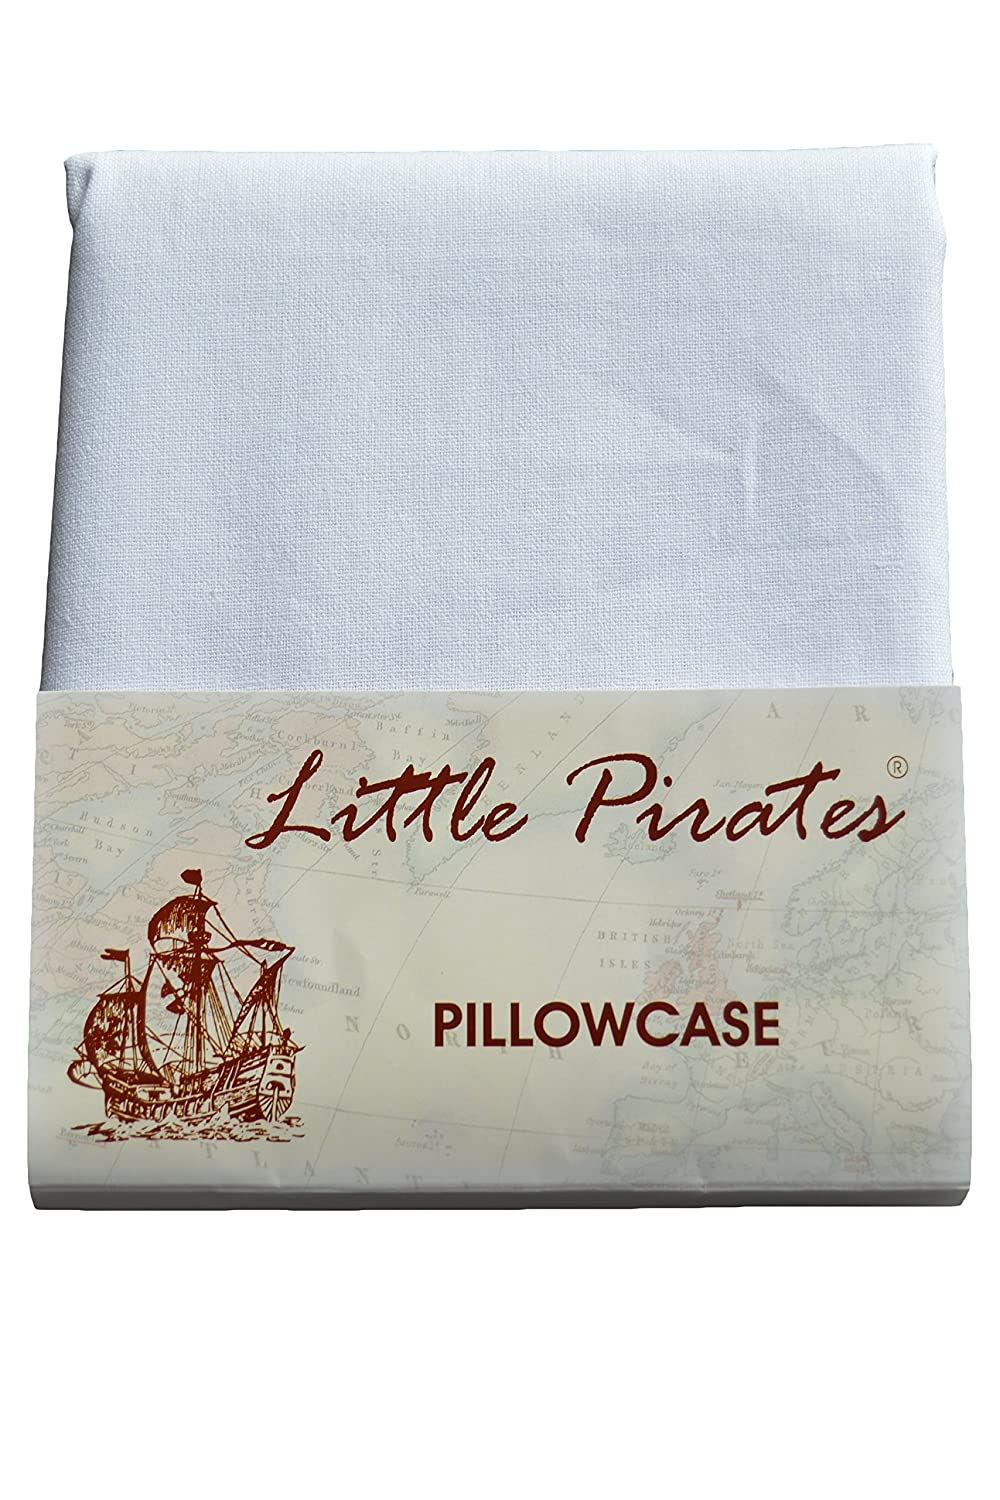 Brand New Baby Cot Bed Pillow Case 60 x 40 - 100% Cotton - White Little Pirates